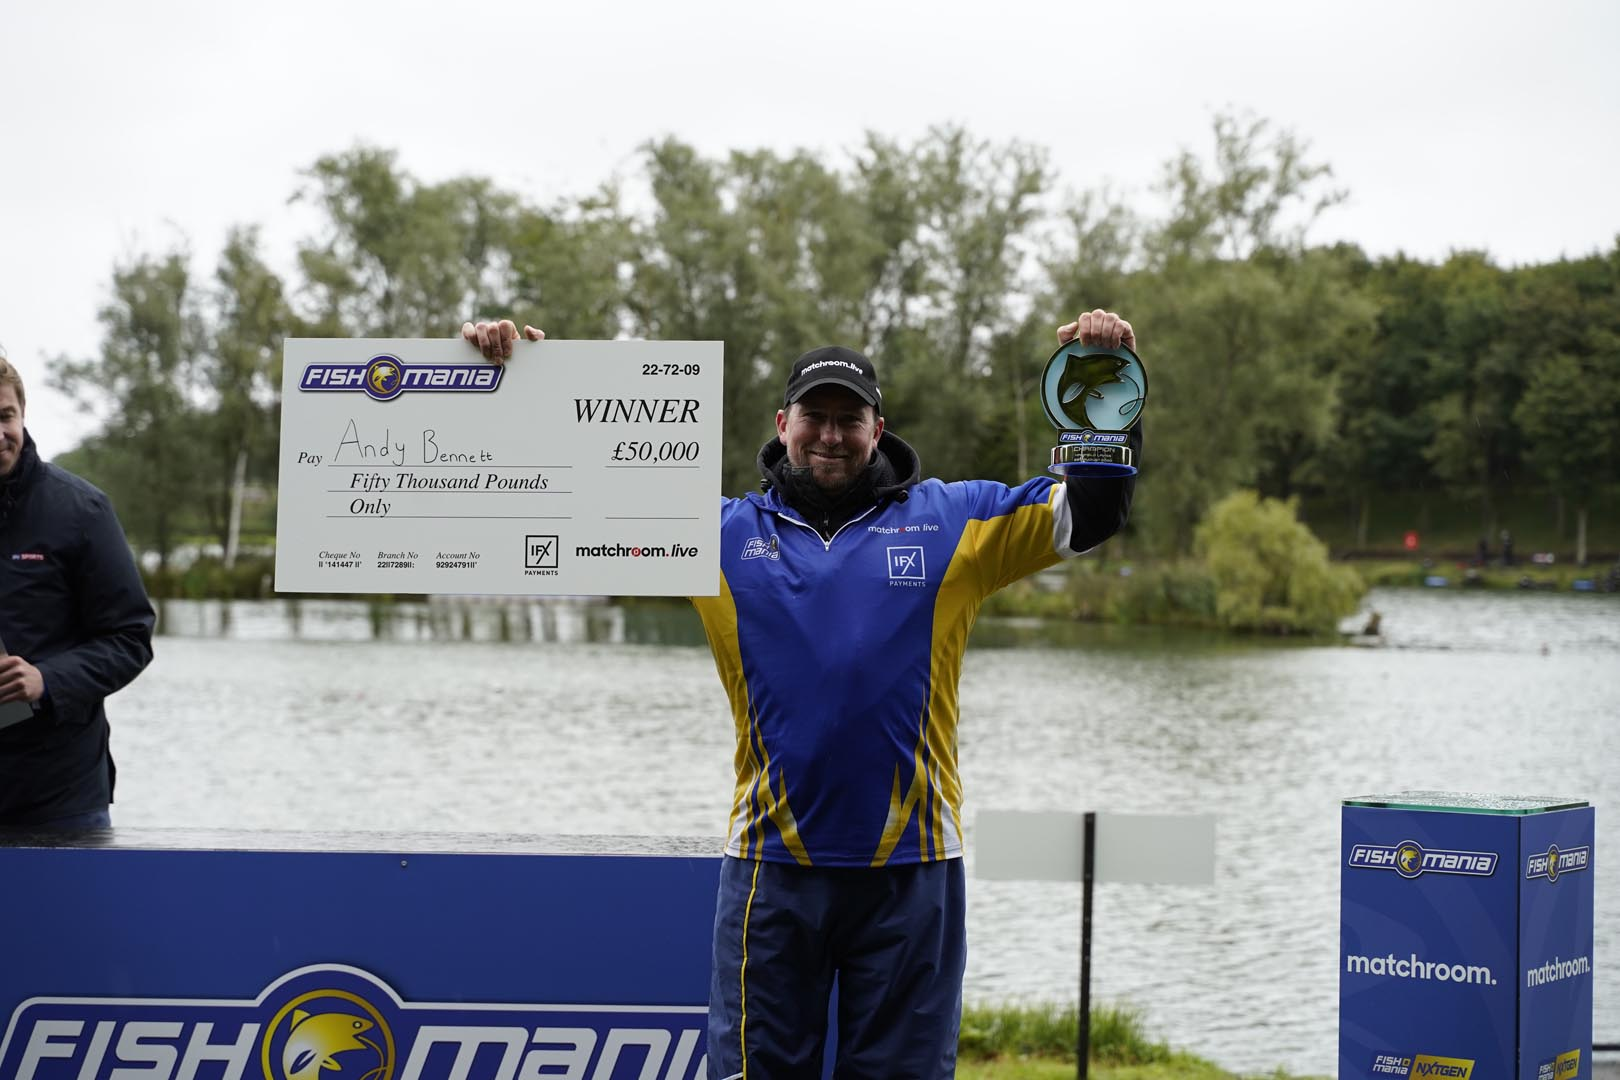 2020 Fish'O'Mania Winner: Andy Bennett